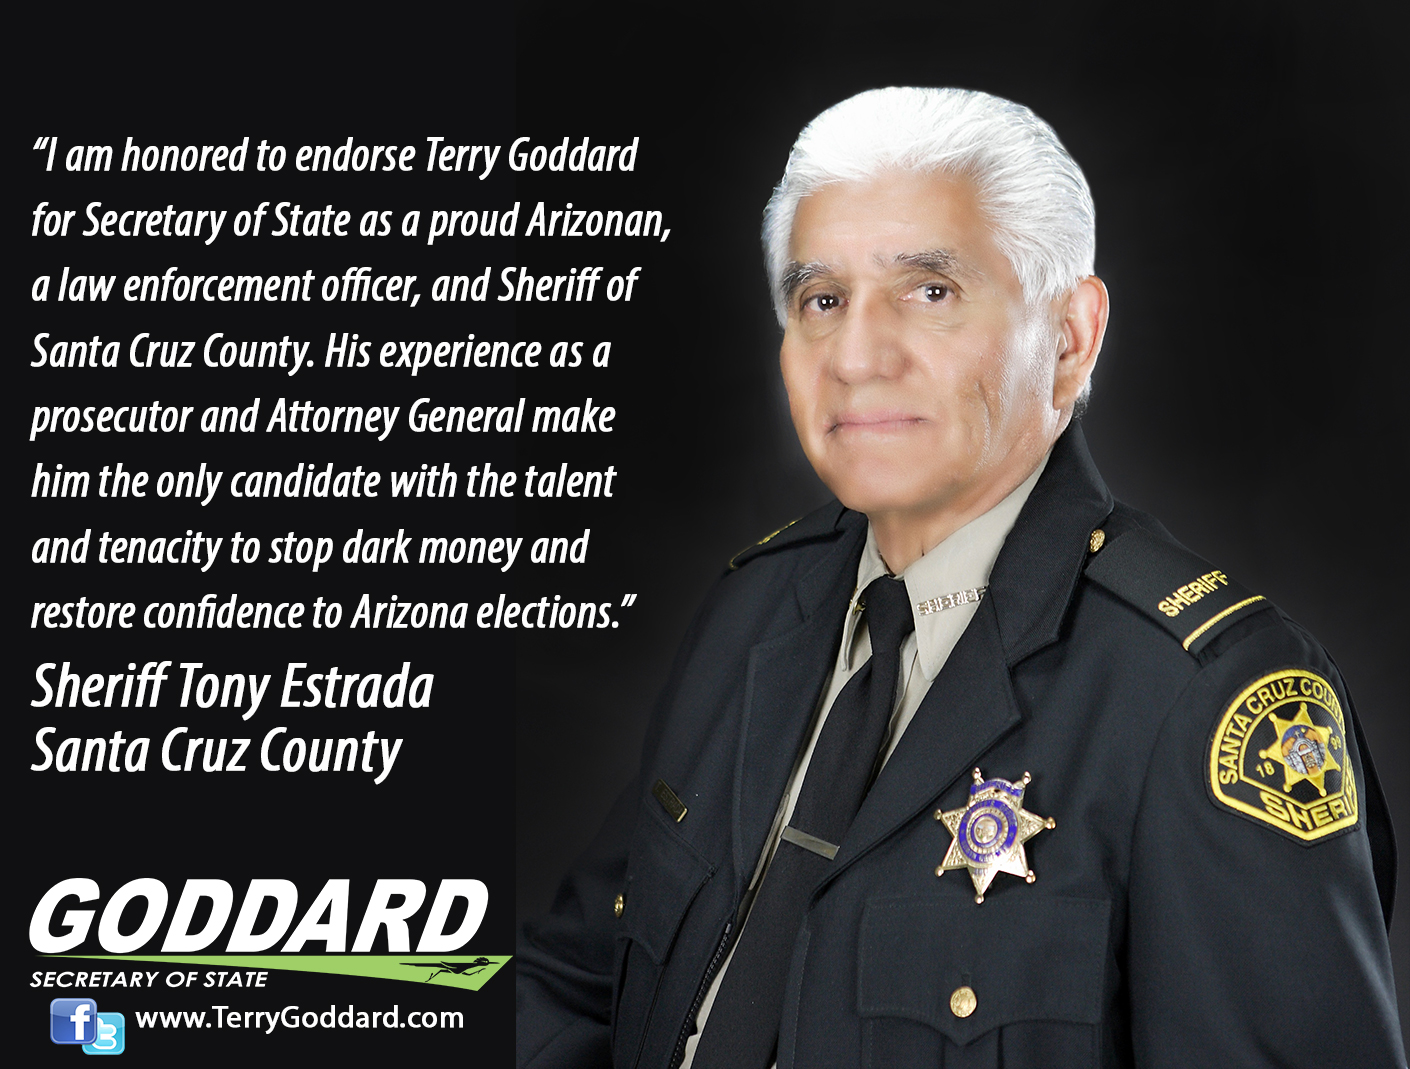 """I am honored to endorse Terry Goddard for Secretary of State as a proud Arizonan, a law enforcement officer, and Sheriff of Santa Cruz County. His experience as a prosecutor and Attorney General make him the only candidate with the talent and tenacity to stop dark money and restore confidence to Arizona elections.""     Sheriff Tony Estrada Santa Cruz County"